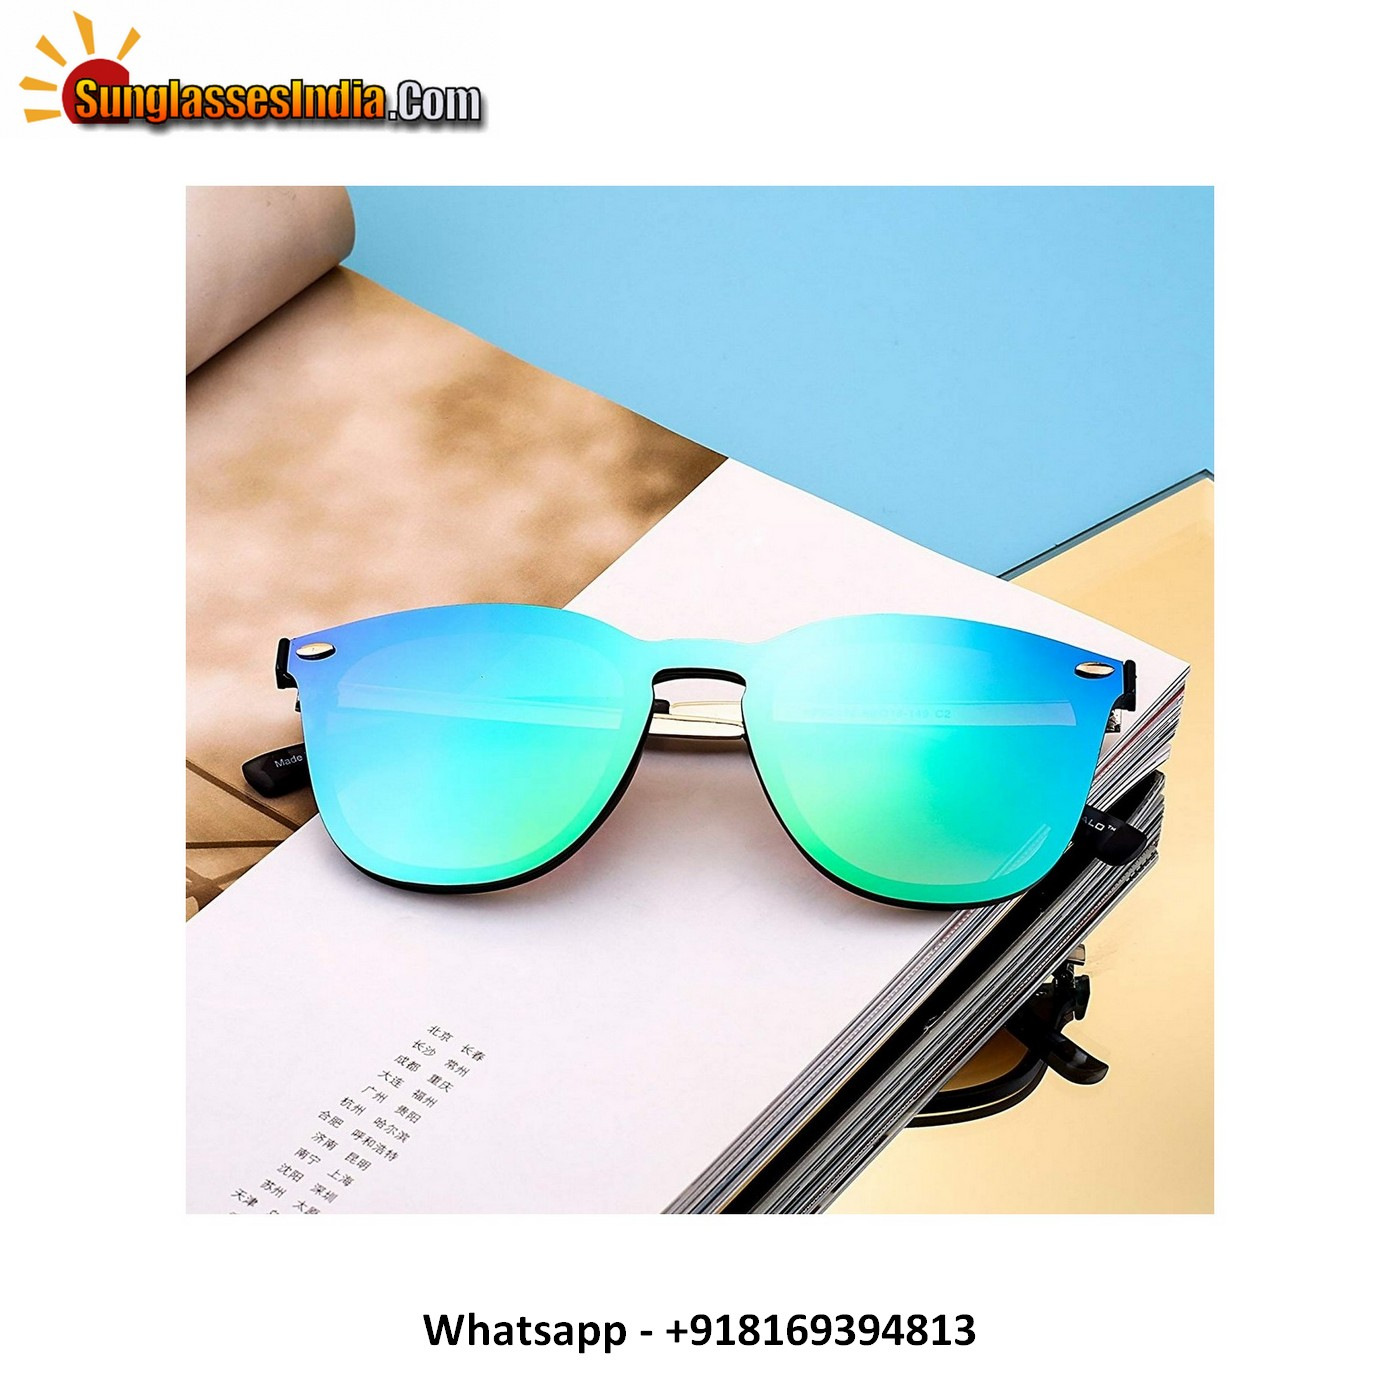 Rimless Mirrored Sunglasses One Piece Reflective Eyeglasses for Men Women